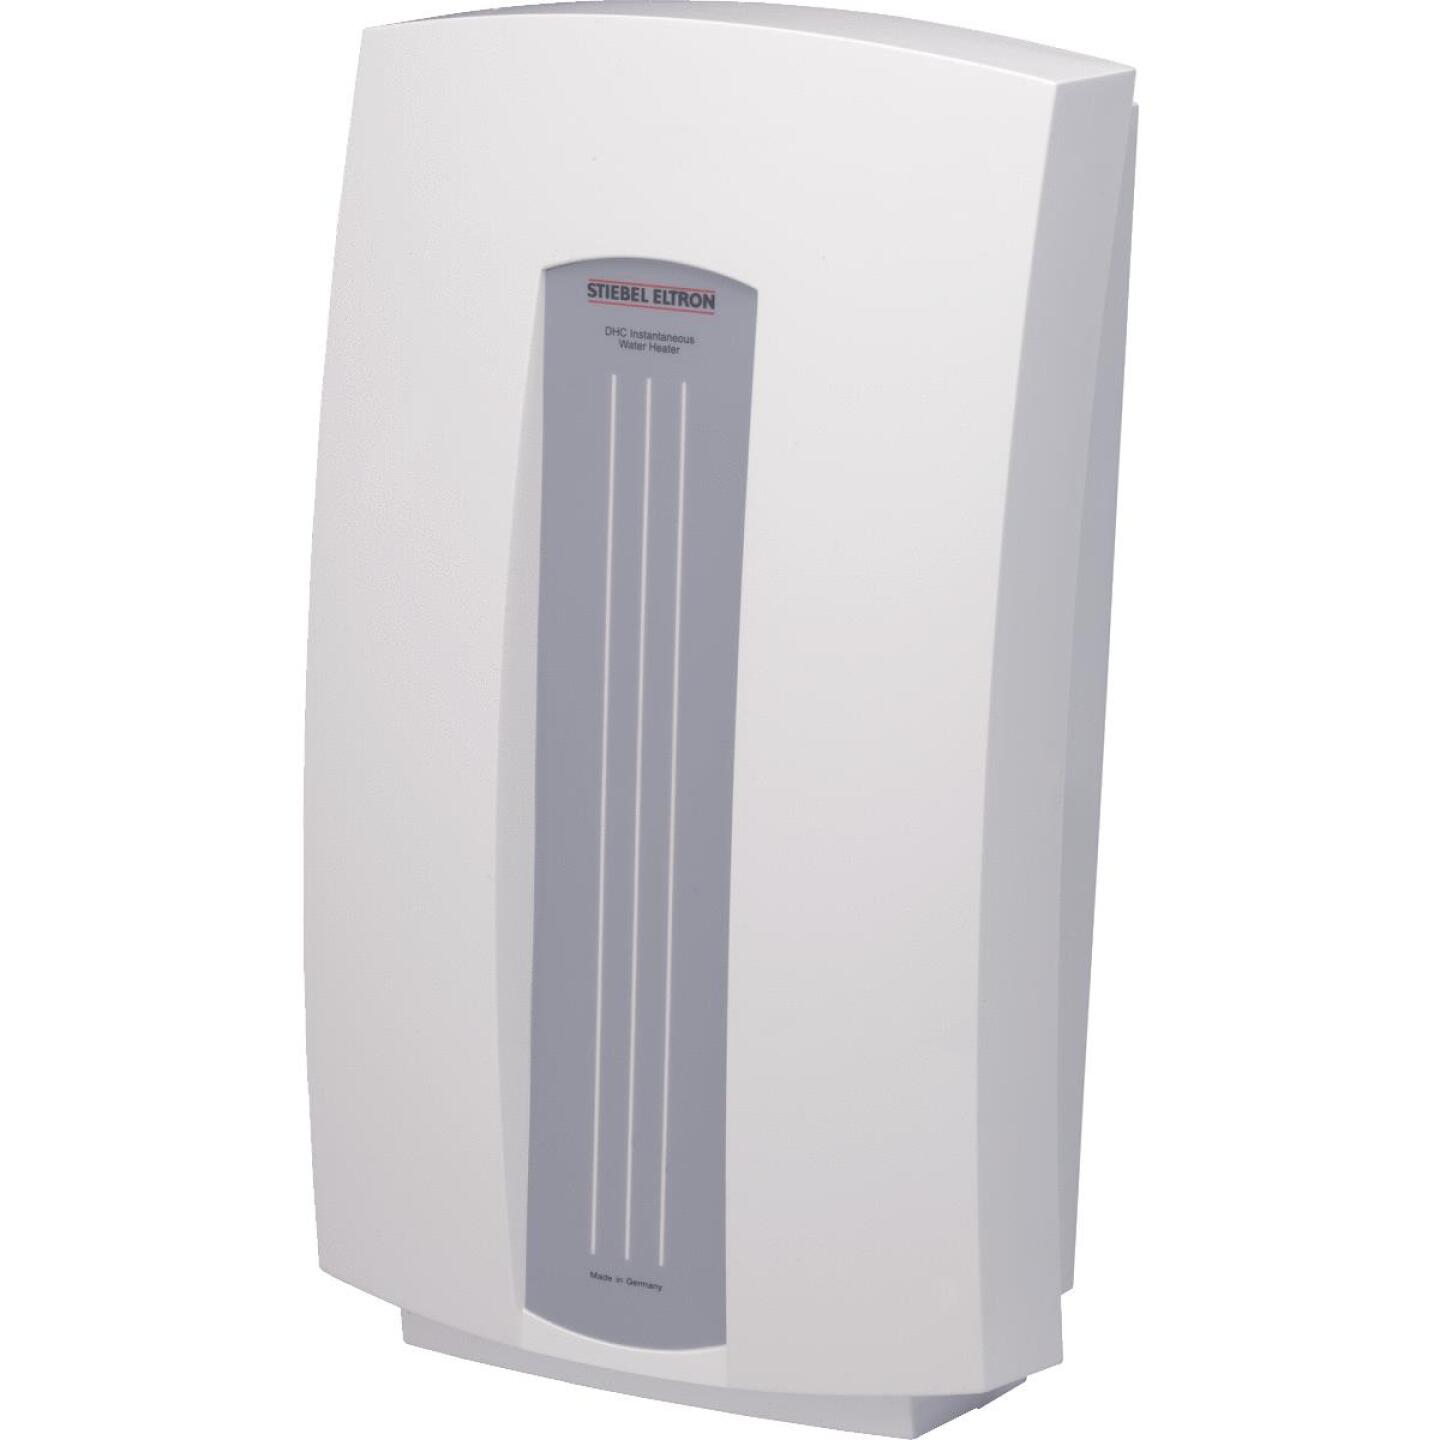 Stiebel Eltron Point-of-Use Tankless Electric Water Heater Image 1